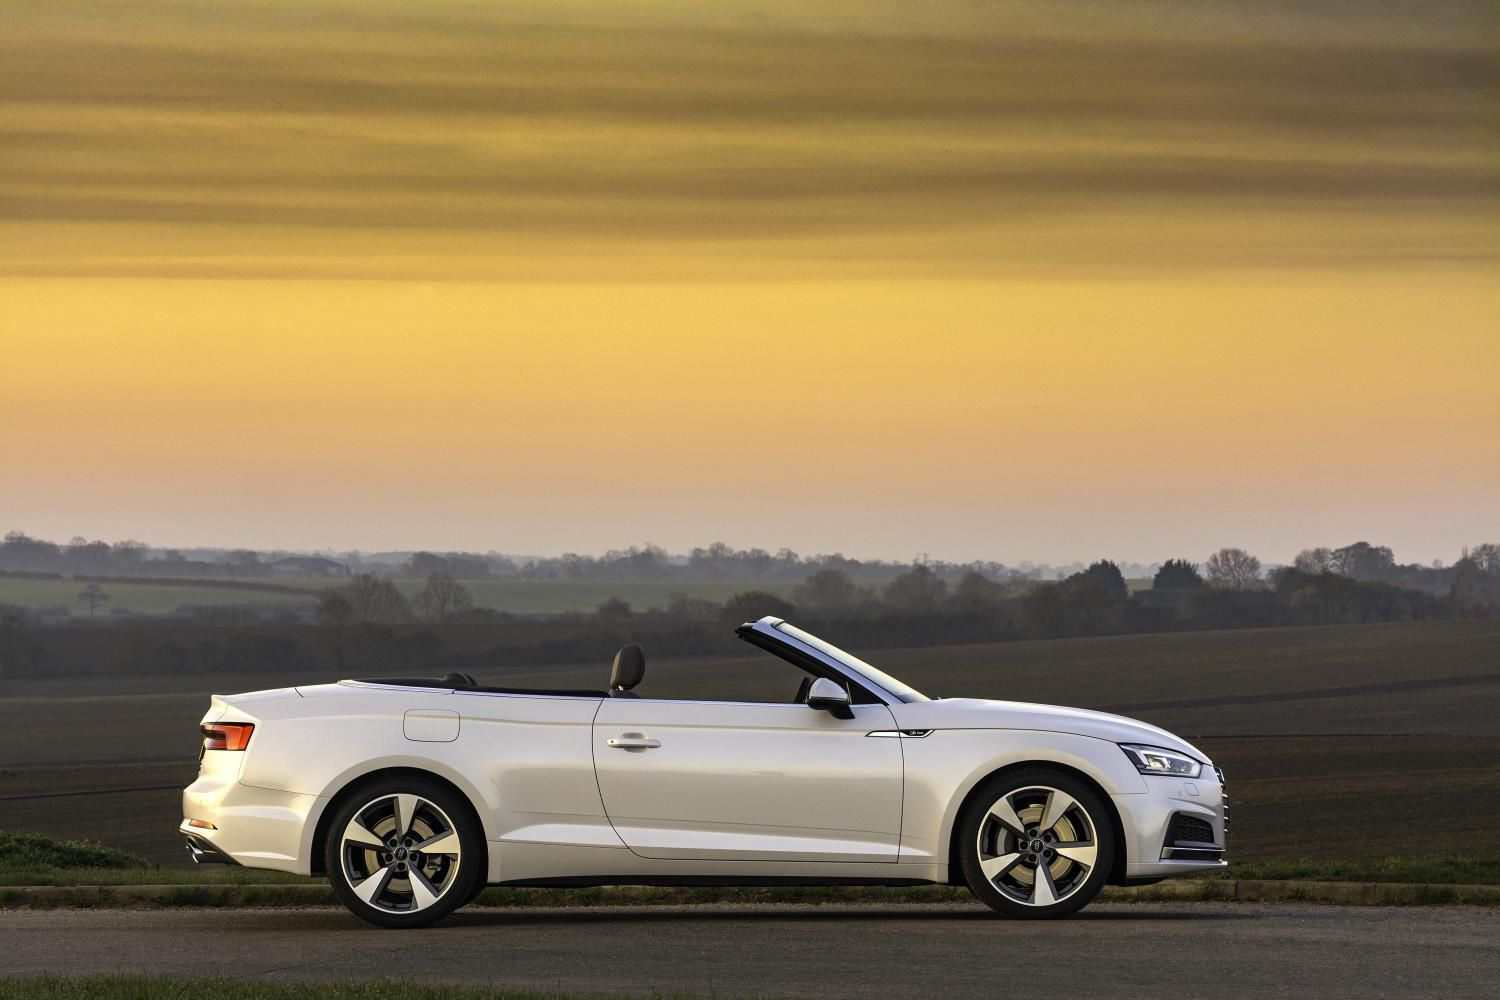 Silver Audi A5 Cabriolet side on at sunset